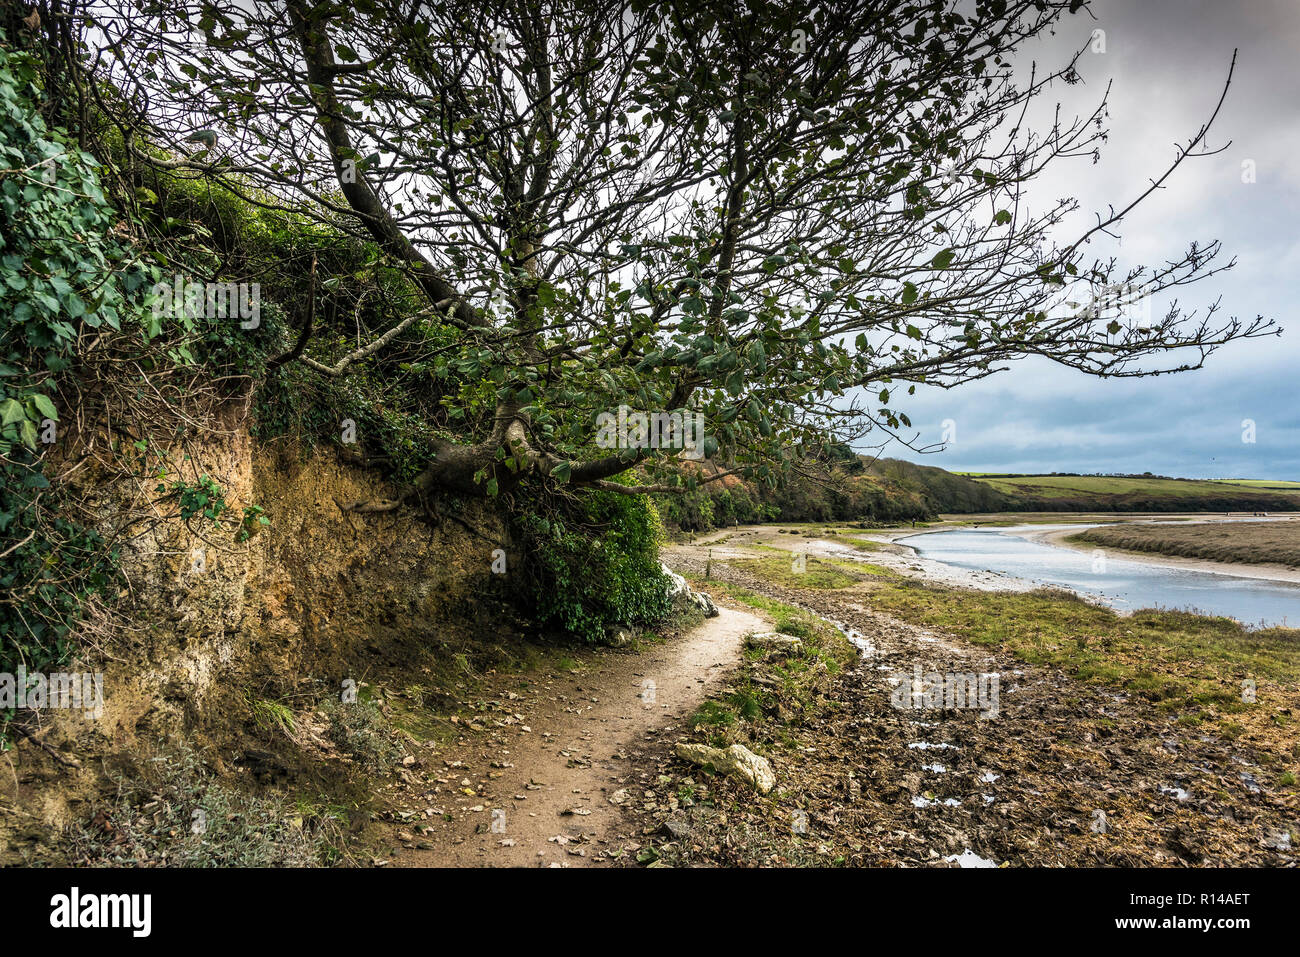 The Penpol footpath bridle path bridleway on the bank of the Gannel River in Newquay in Cornwall. - Stock Image